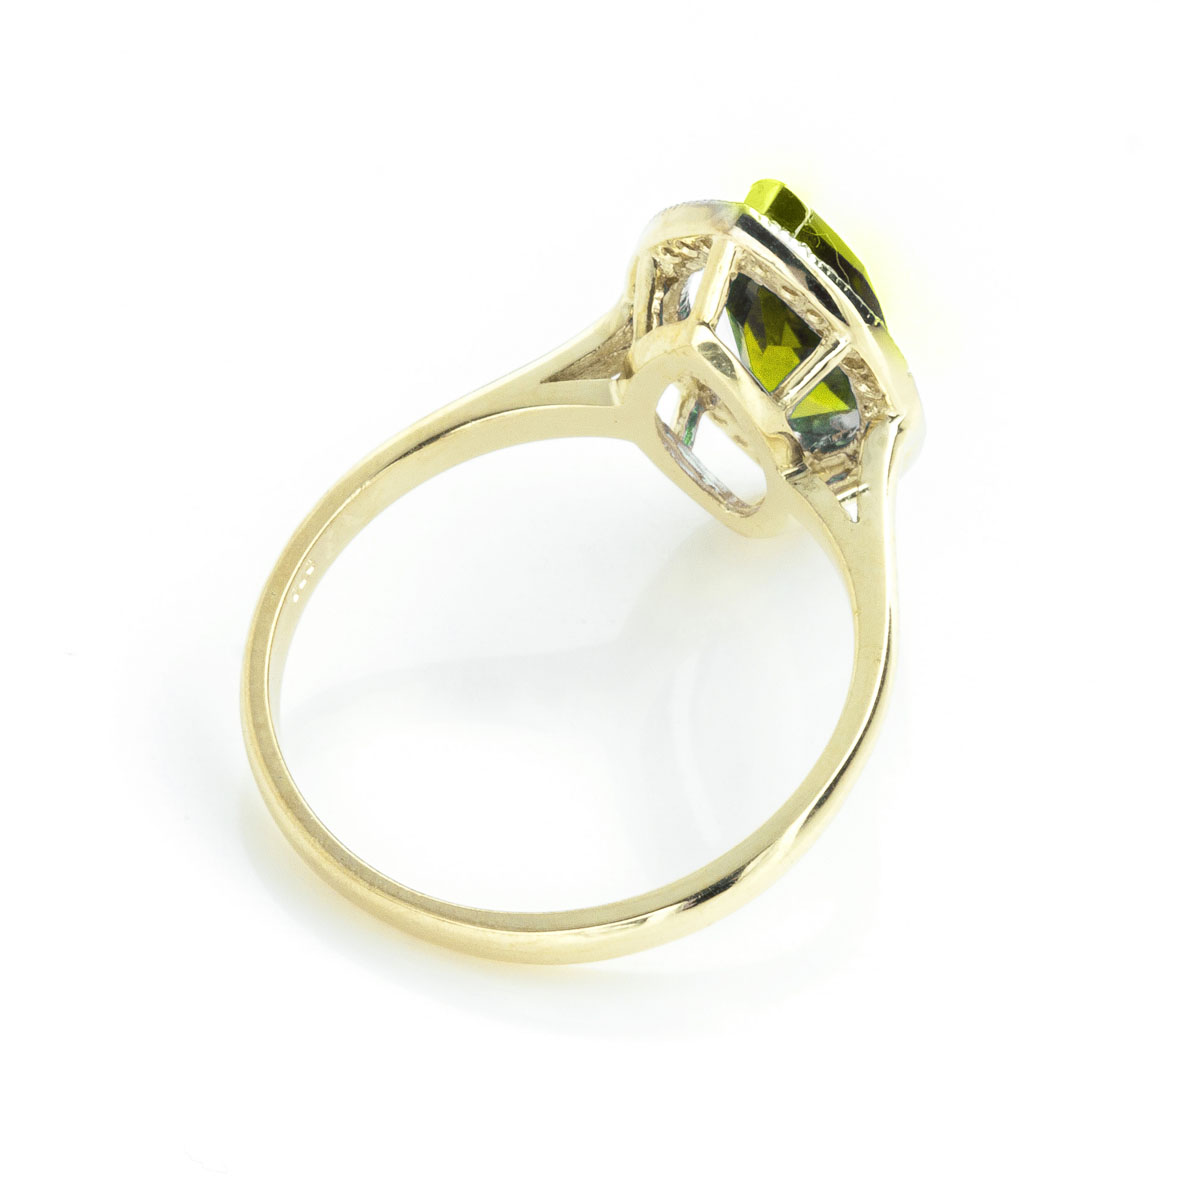 Peridot Halo Ring 2.15 ctw in 9ct Gold